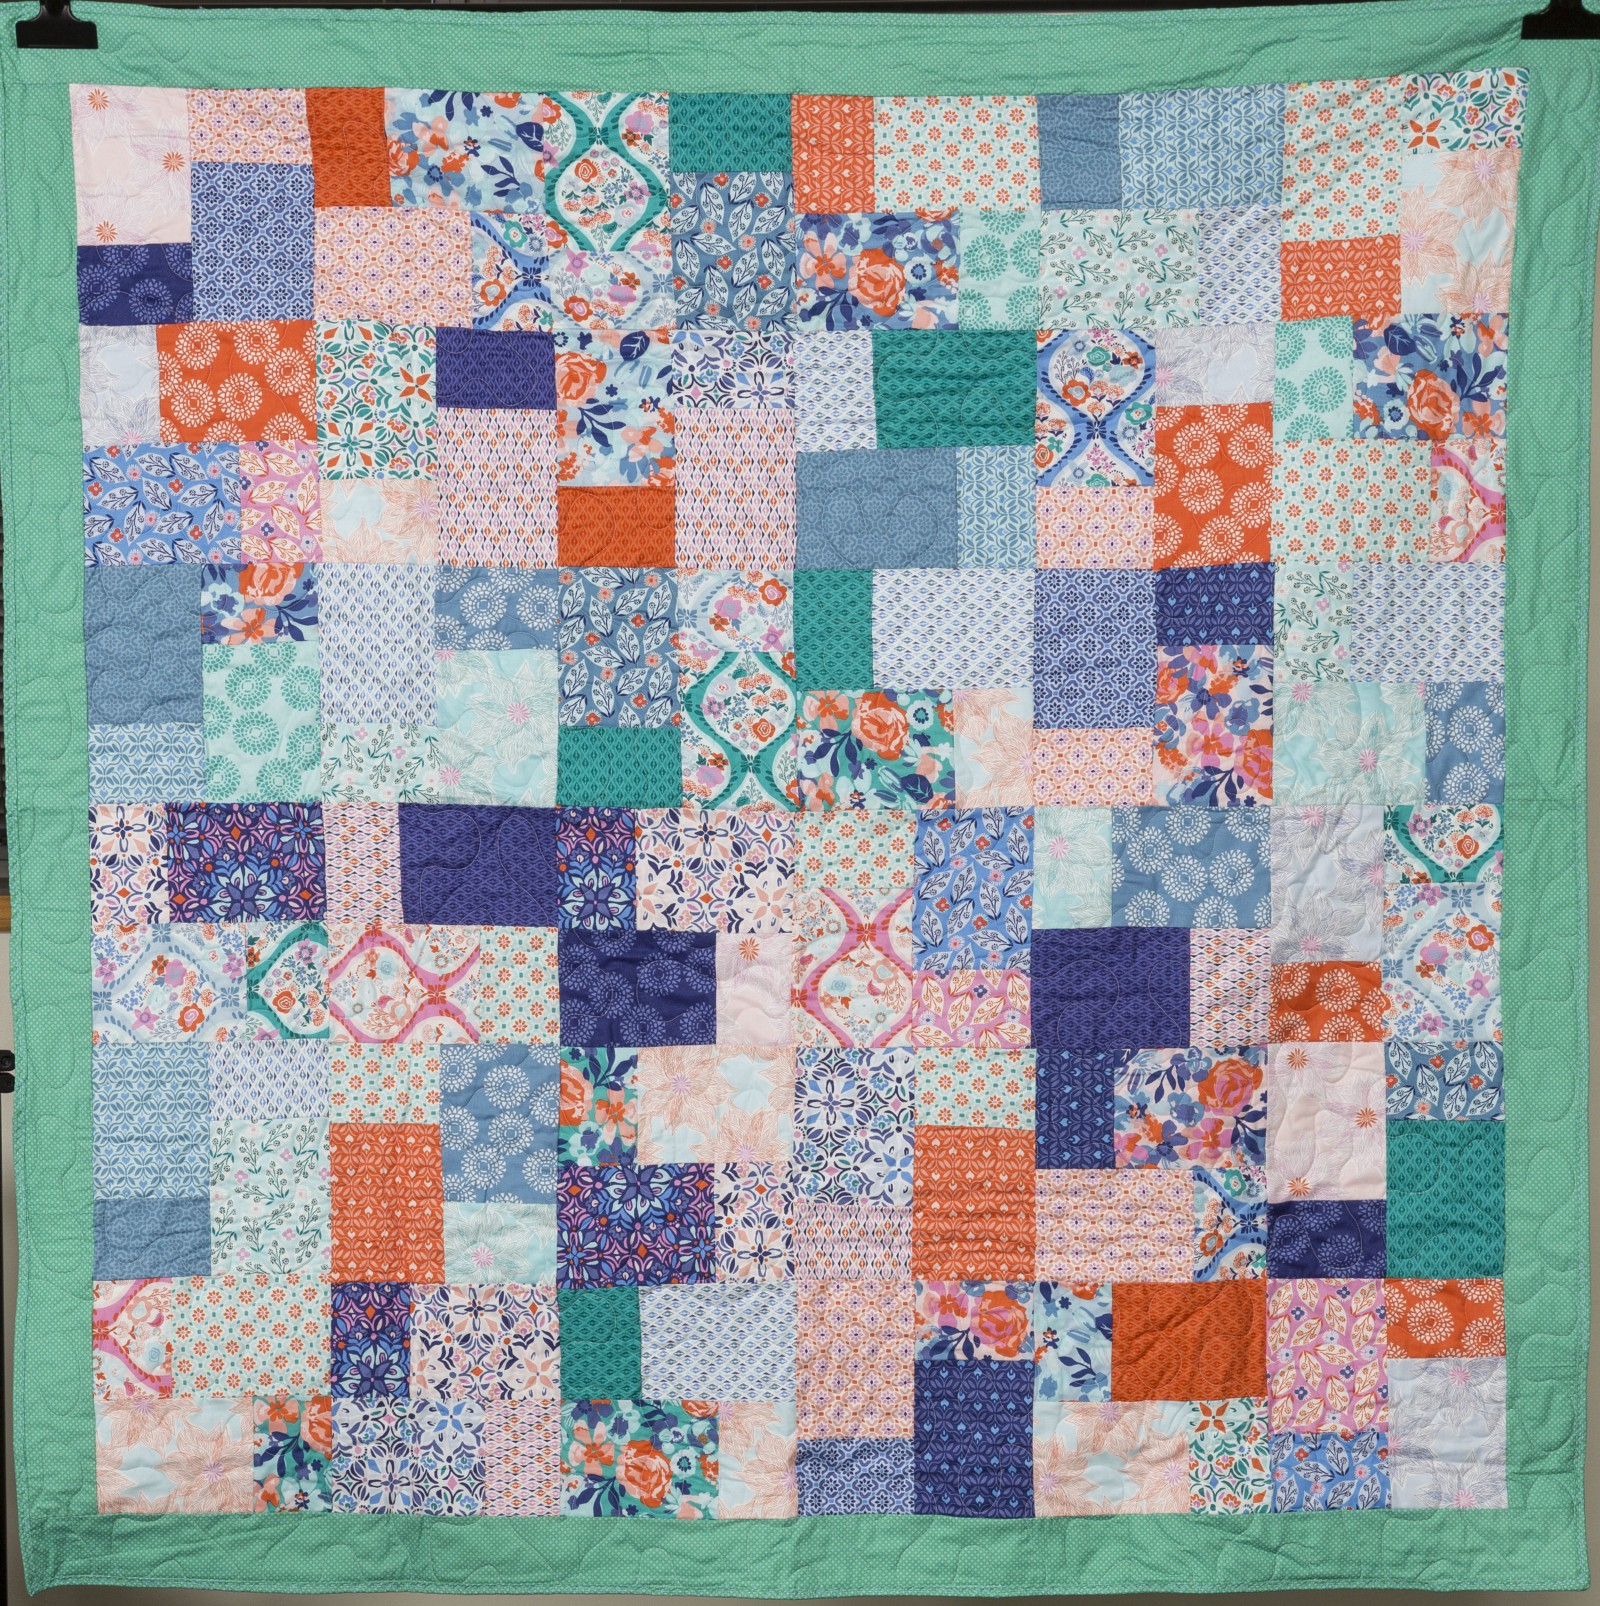 quilting for a cause quilt show to raise funds for cancer patients